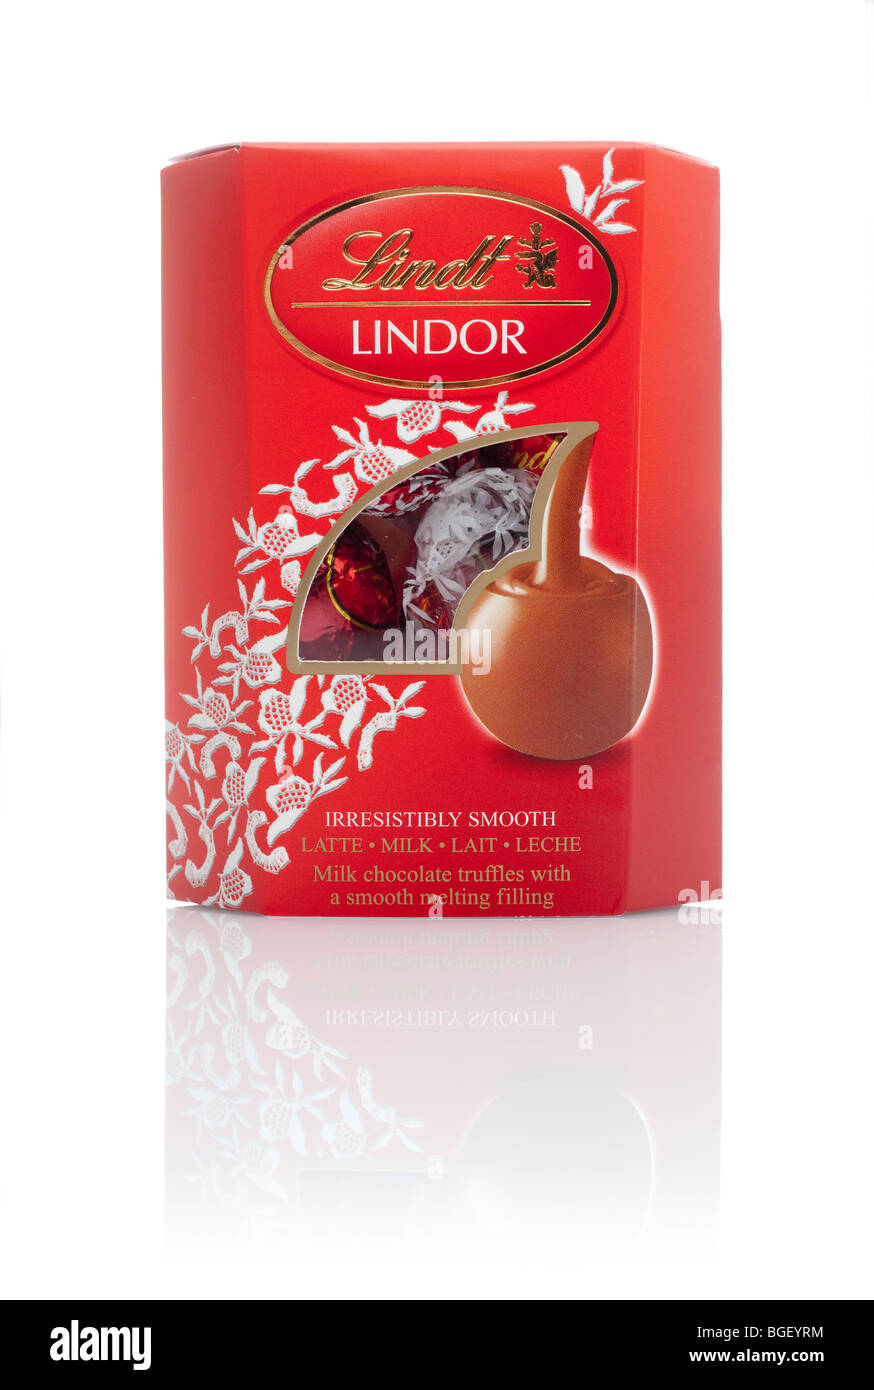 Lindt Swiss White Chocolate Calories